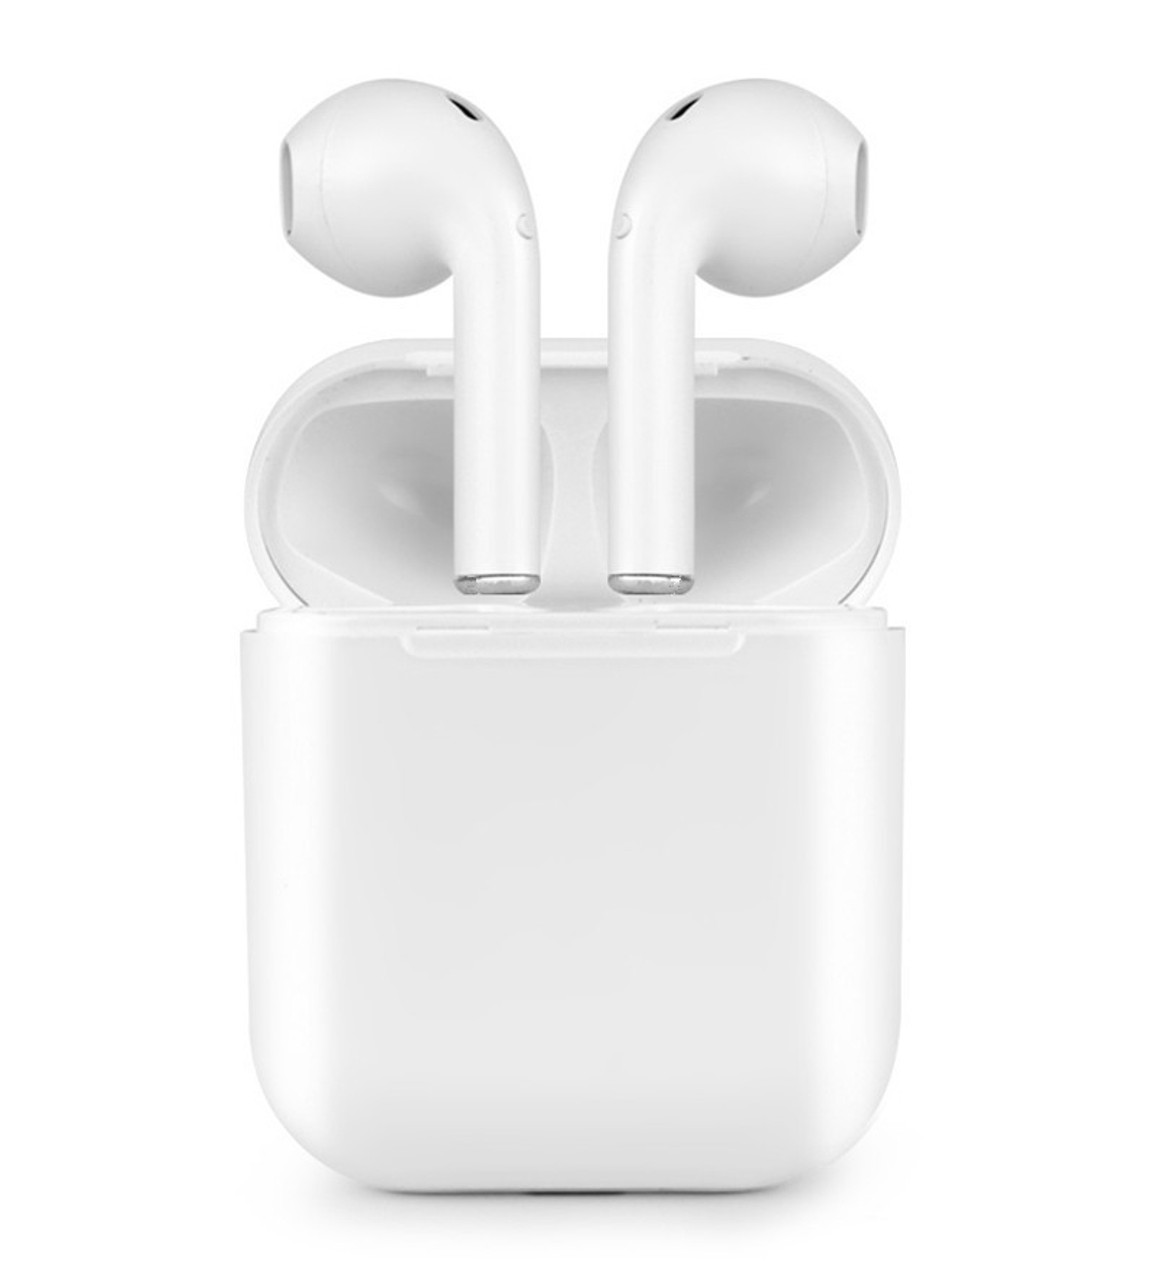 Sound & Sonic SS-WBHC-WT Wireless Earbuds Bluetooth v4.2 HD Stereo Sound (White with Charging Case)